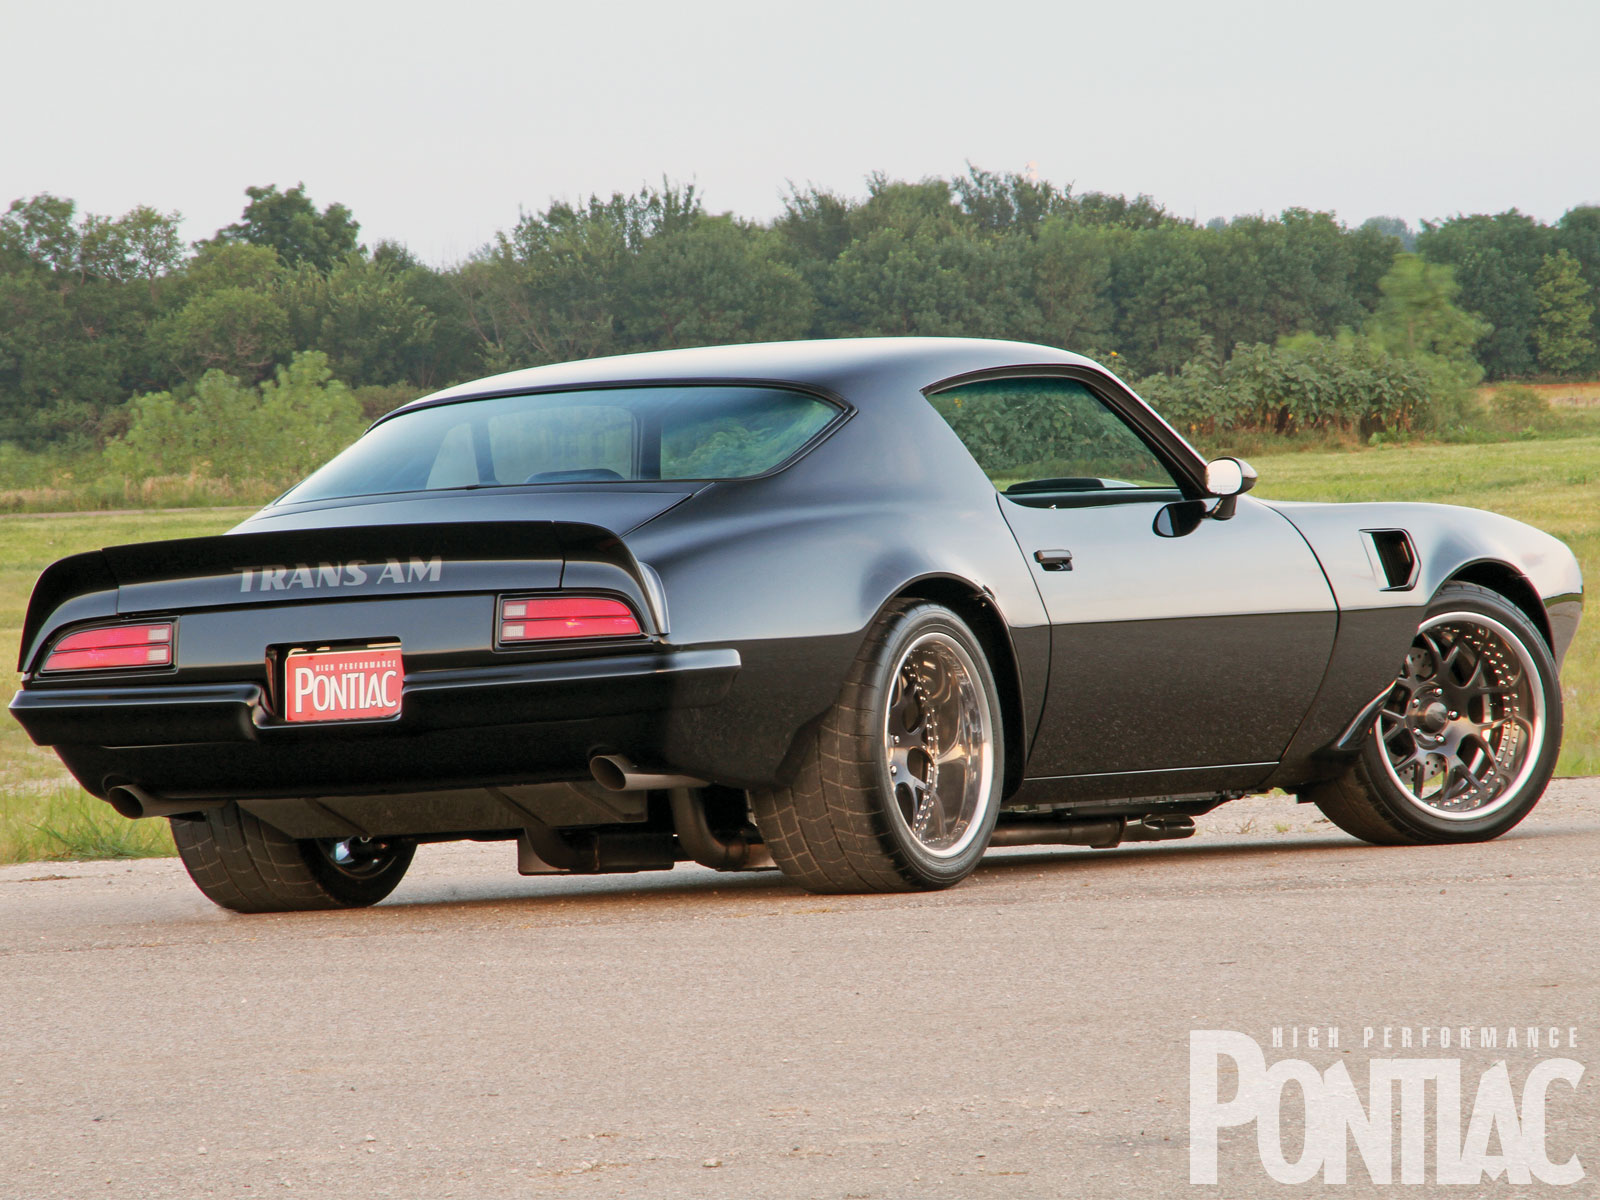 3dtuning of pontiac trans am coupe 1973 3dtuning com